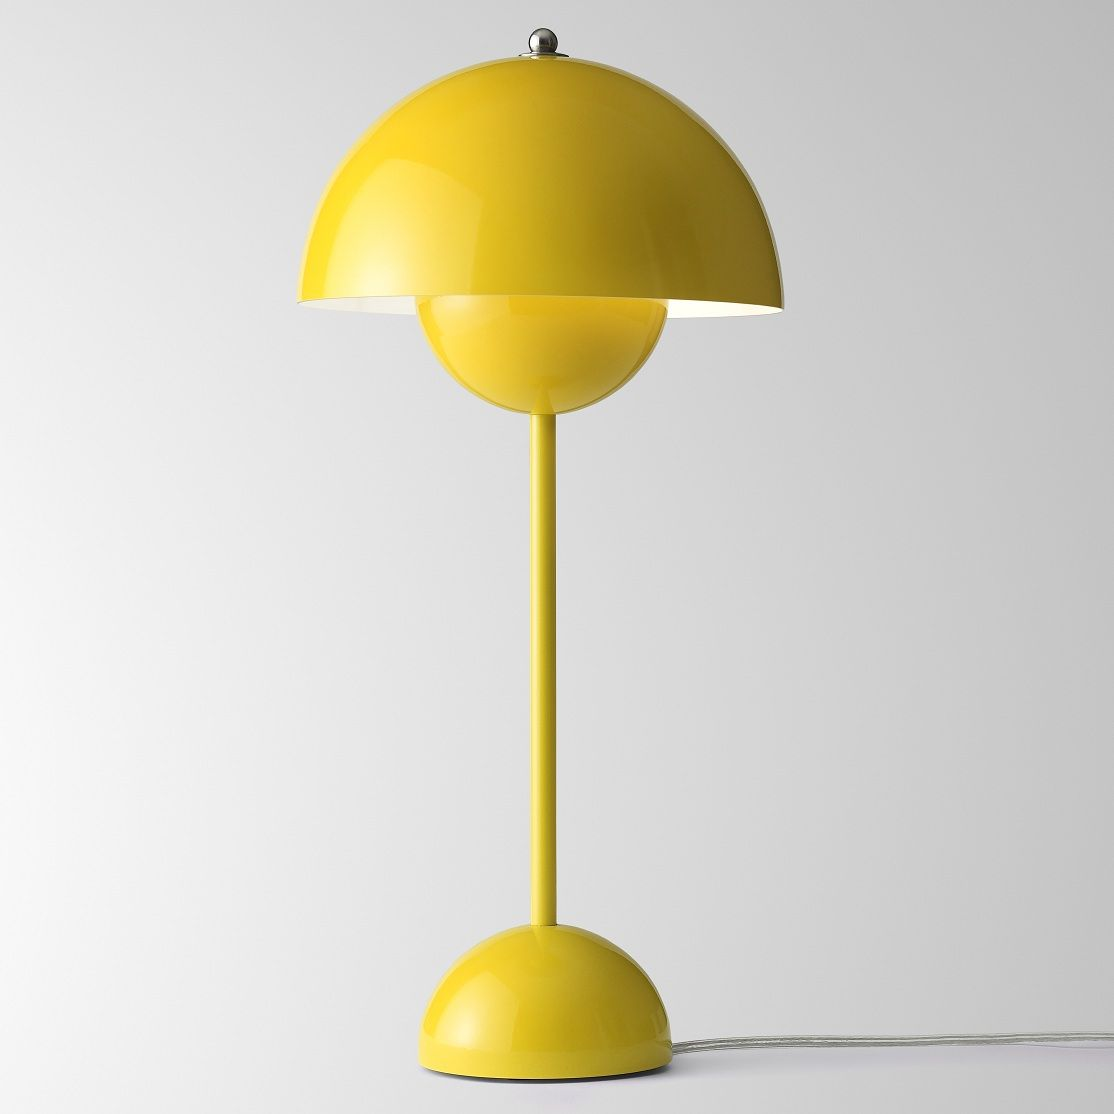 Flowerpot Lampe De Table Jaune H50cm Lampe A Poser Tradition Designe Par Verner Panton Lightonline Table Jaune Decoration Escalier Lampes De Table